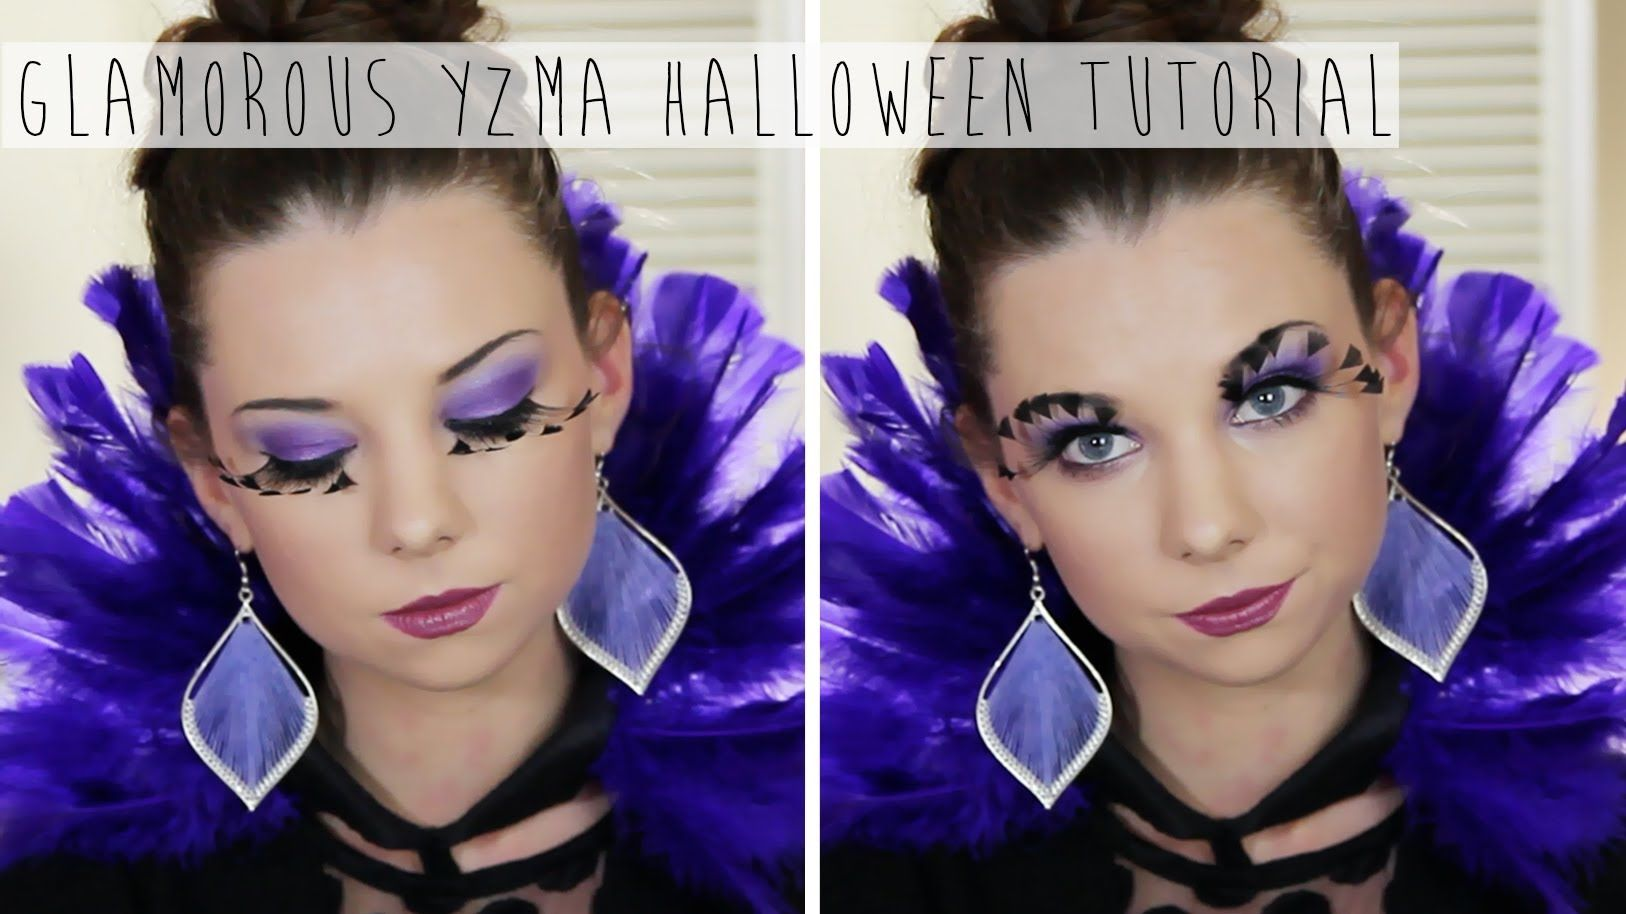 This Is A Glamorous Makeup And Hair Tutorial Of Yzma From The